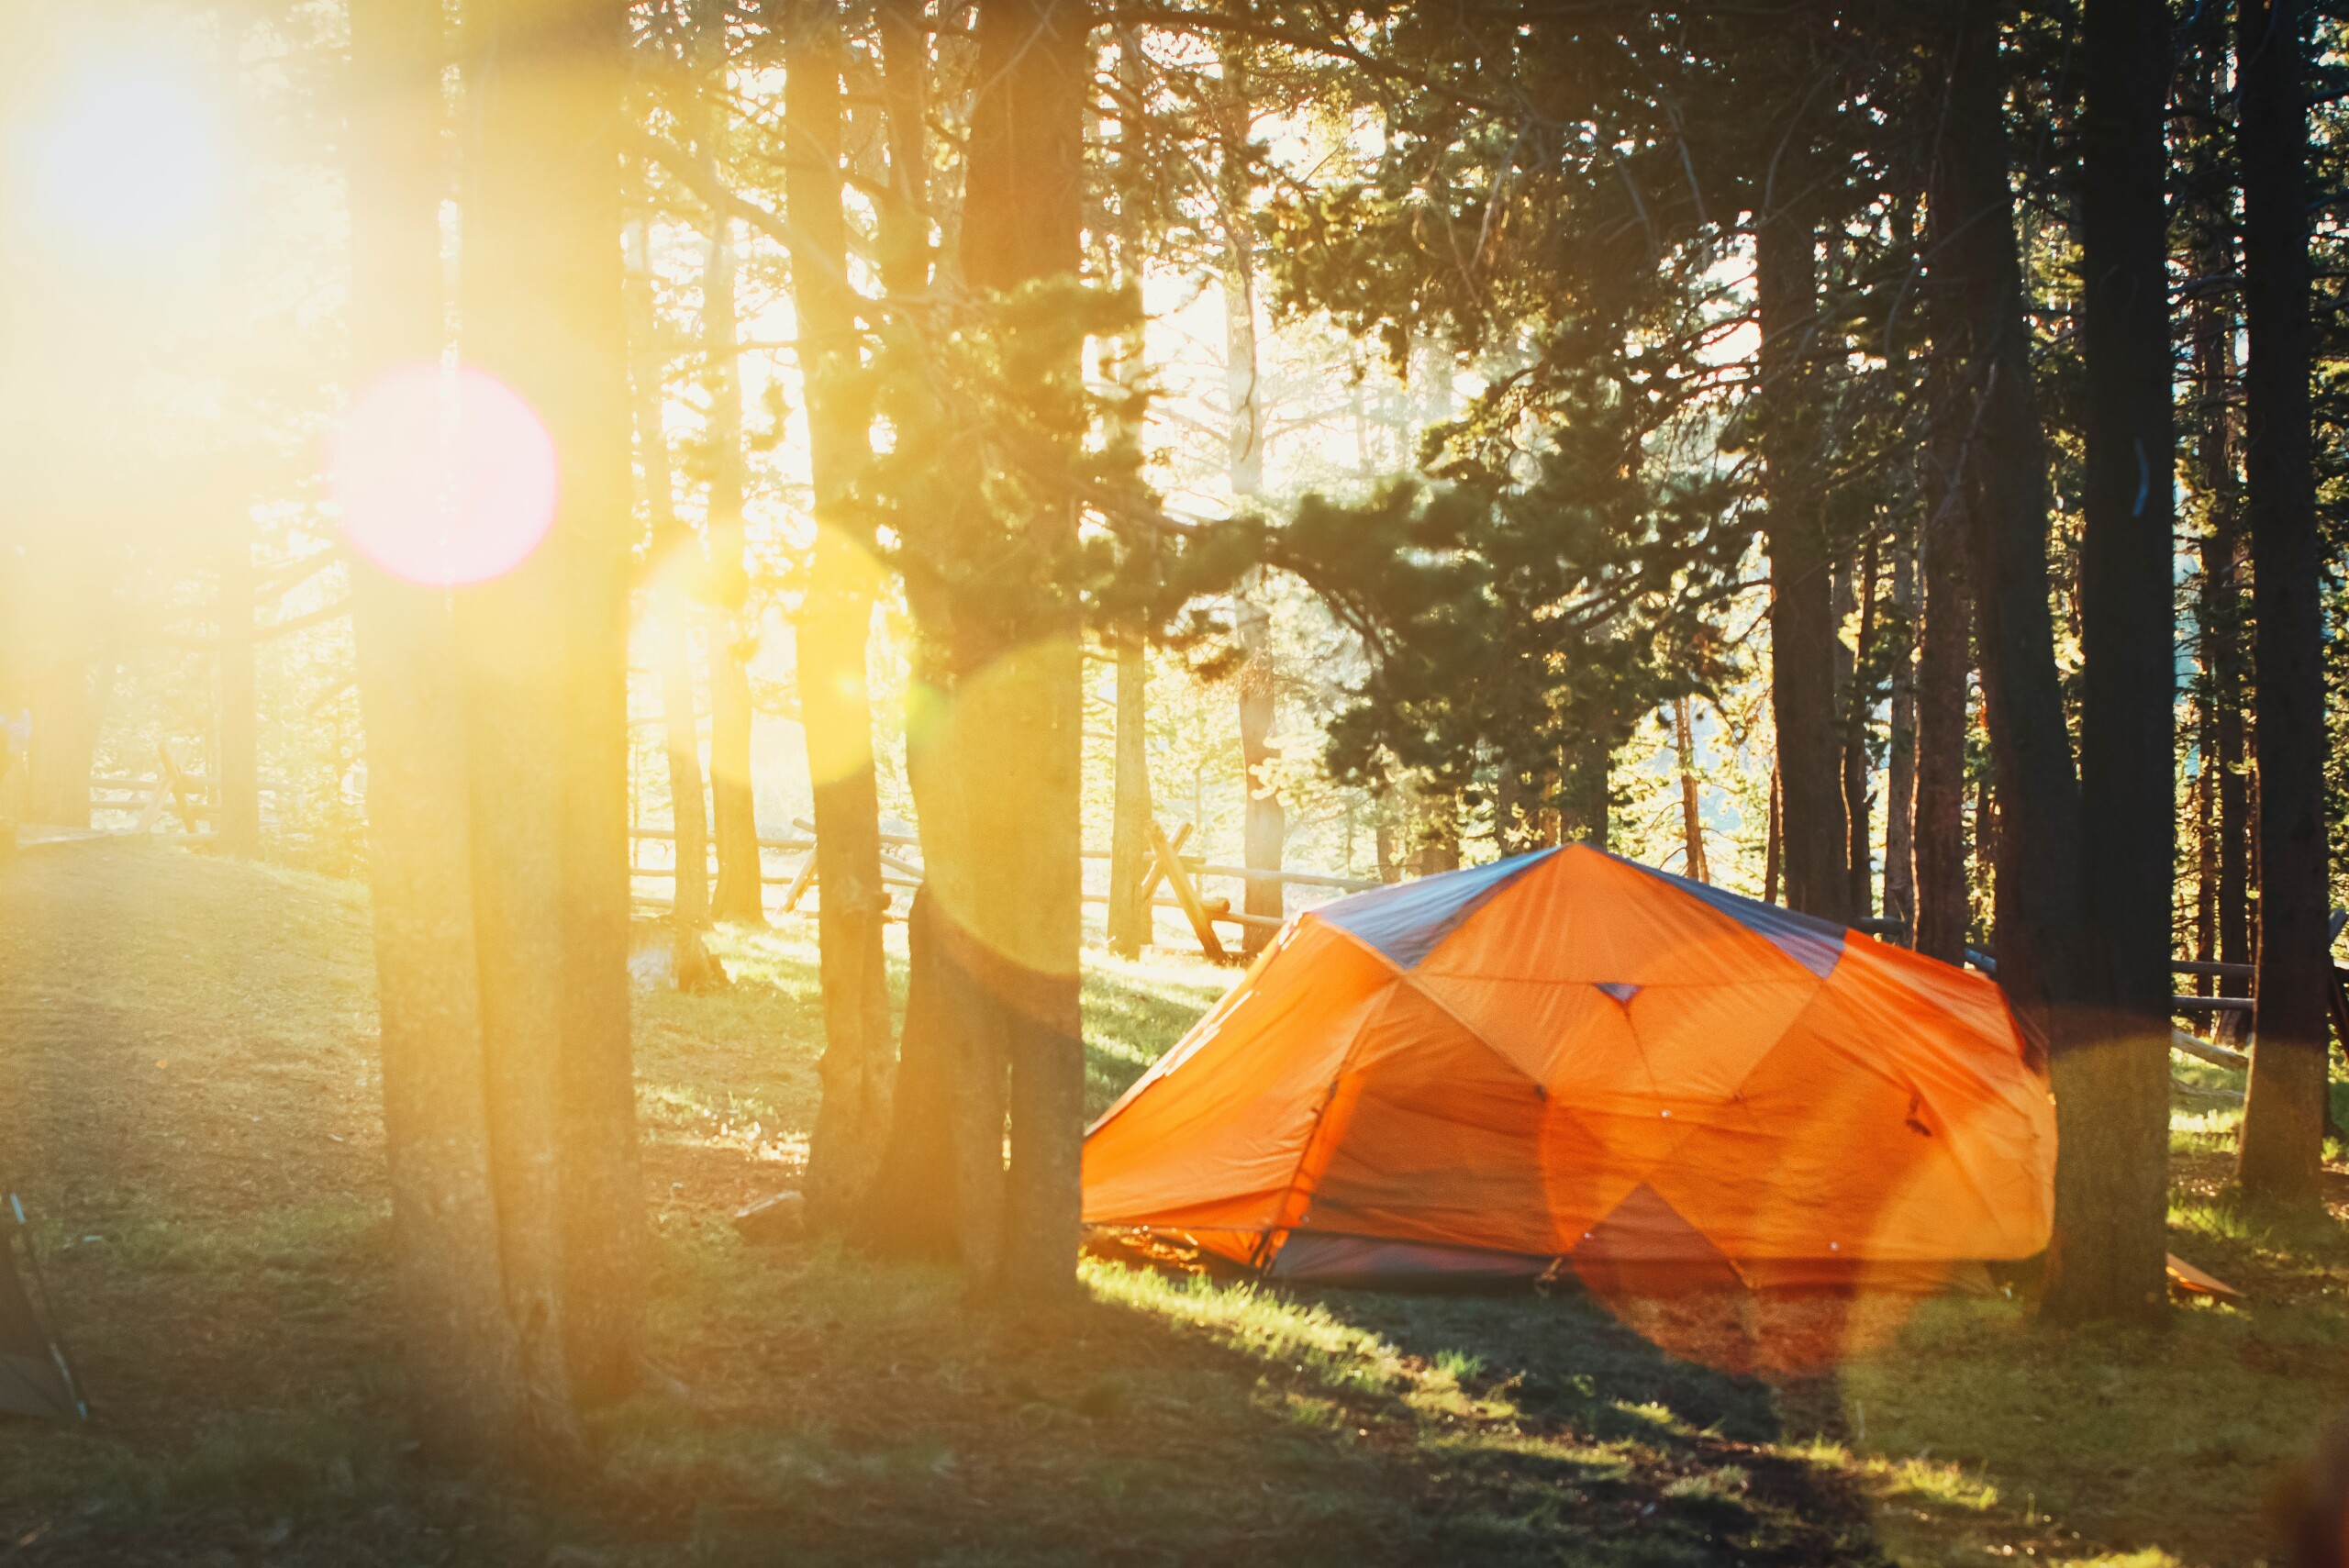 Consider Camping for a Different Vacation